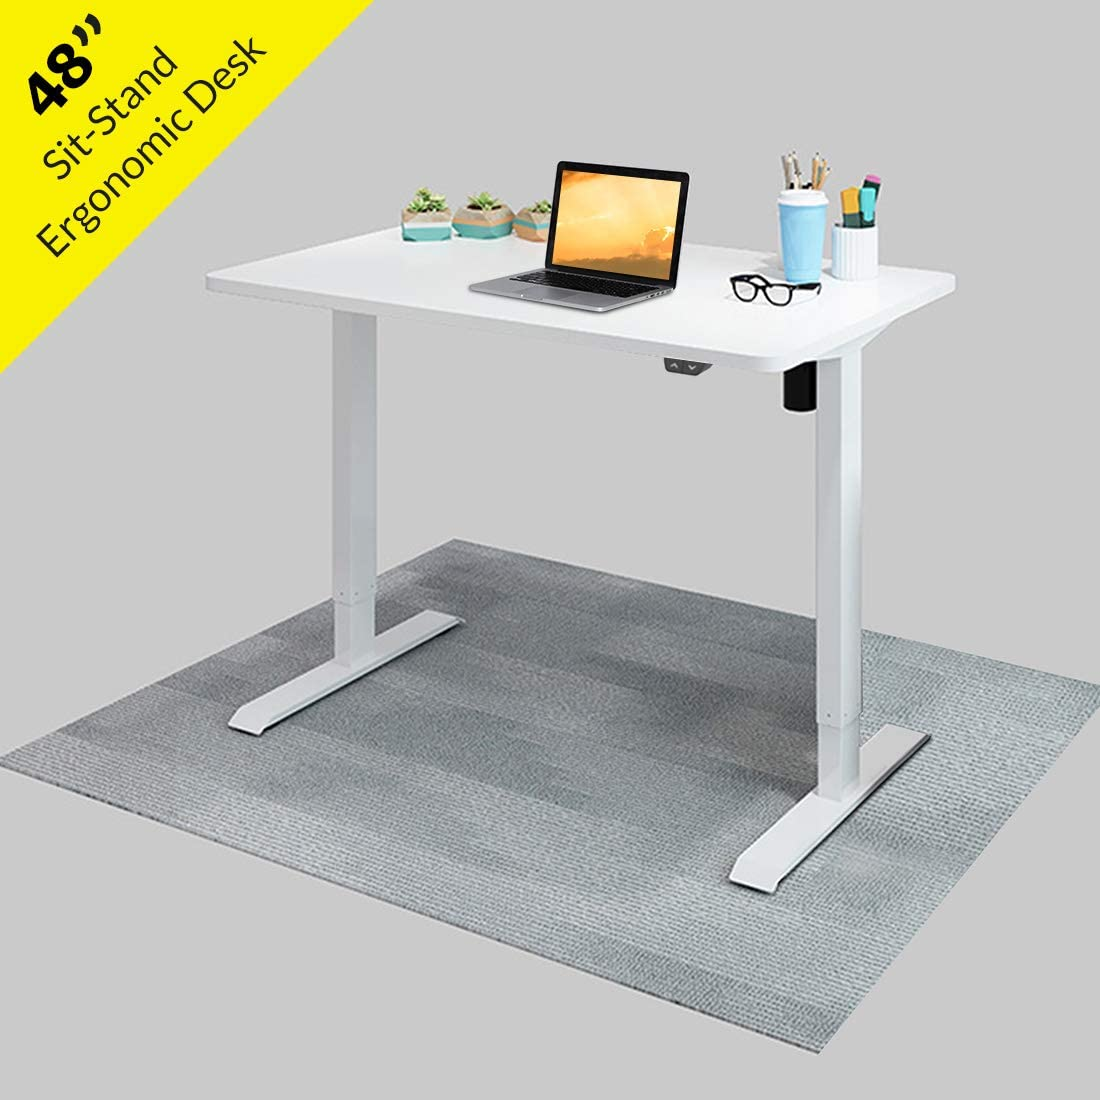 "Electric Height Adjustable Standing Desk 48"" Sit Stand Up Computer Desk Workstation for Home Office (White Frame/White Desktop, 48 x 30 inch)"